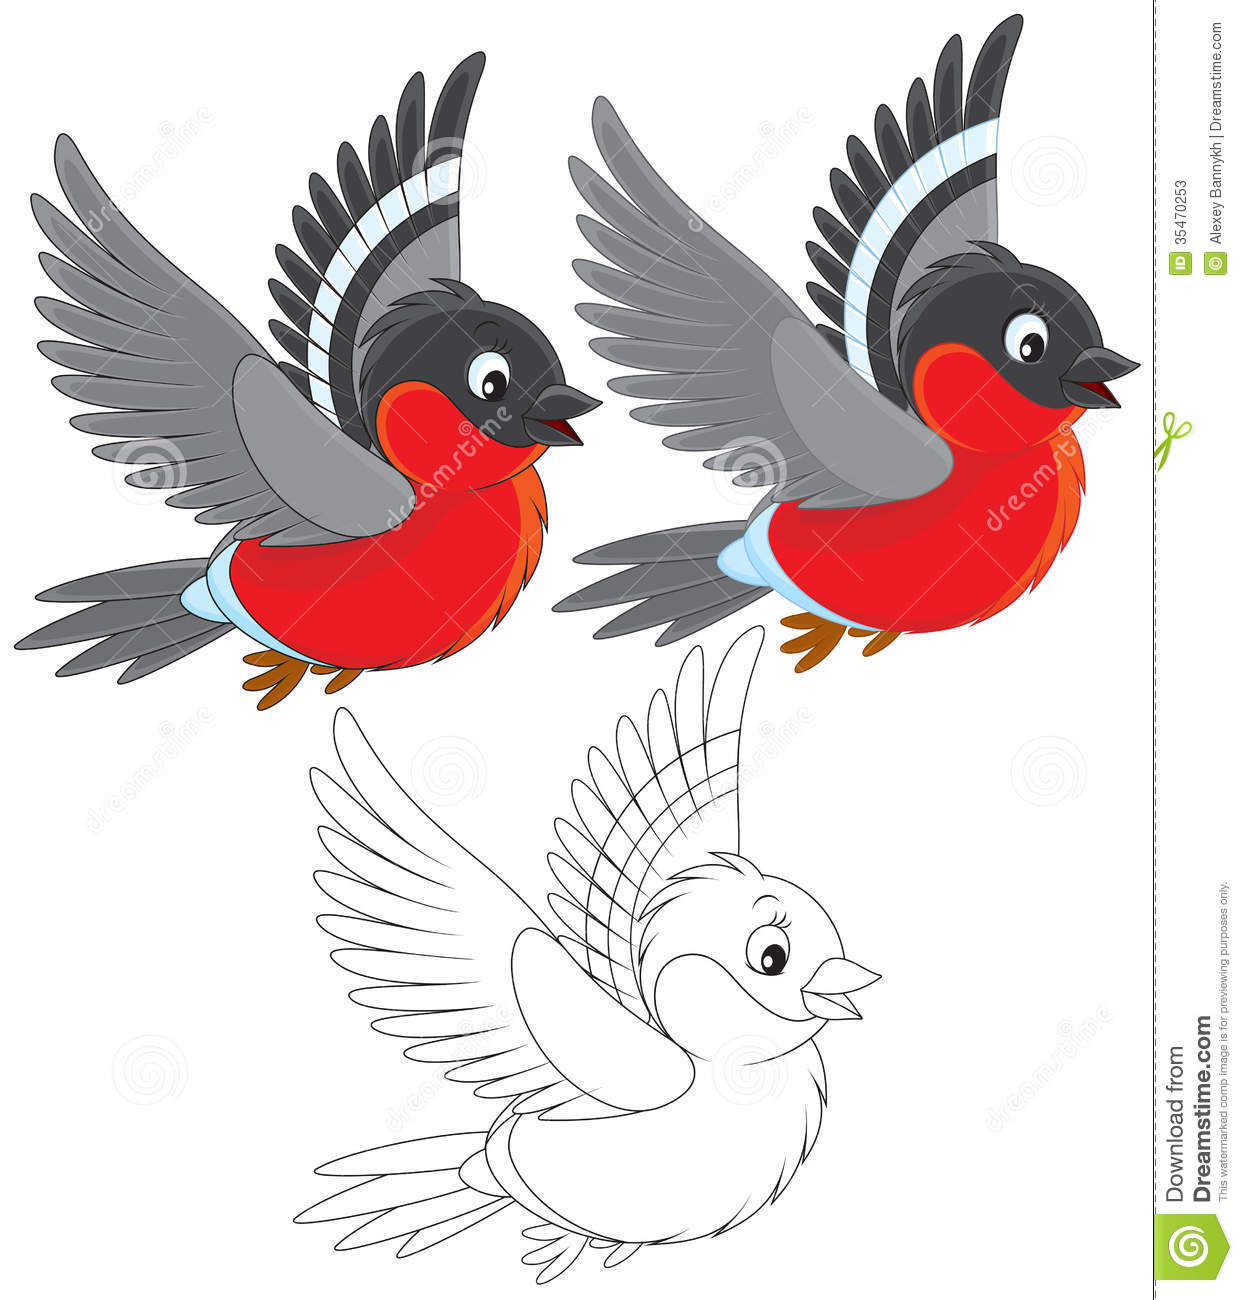 Bullfinch stock illustration. Illustration of coloring - 35470253